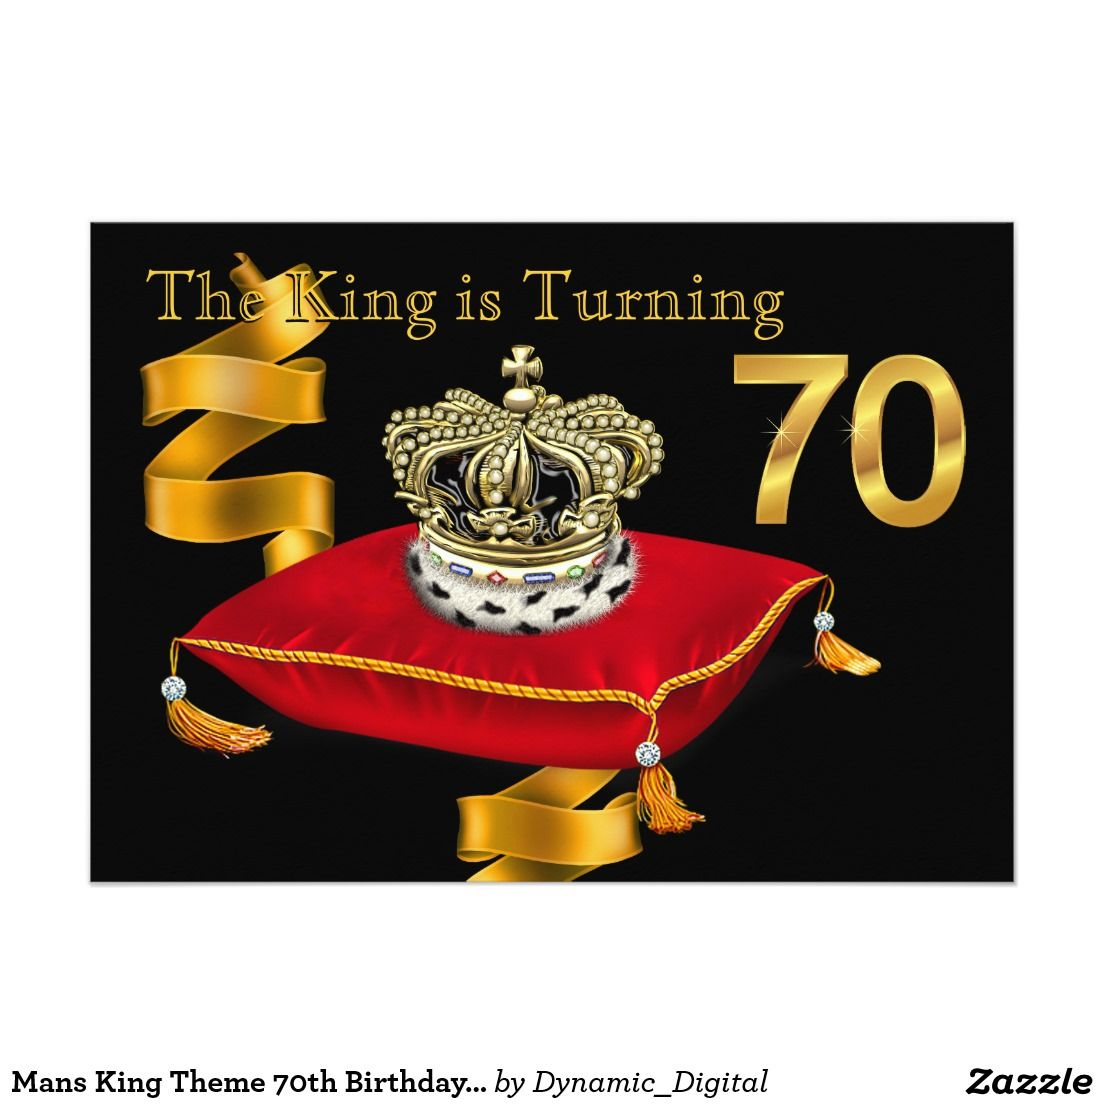 Mans king theme 70th birthday party card 70 birthday parties 70 mans king theme 70th birthday party 5x7 paper invitation card biocorpaavc